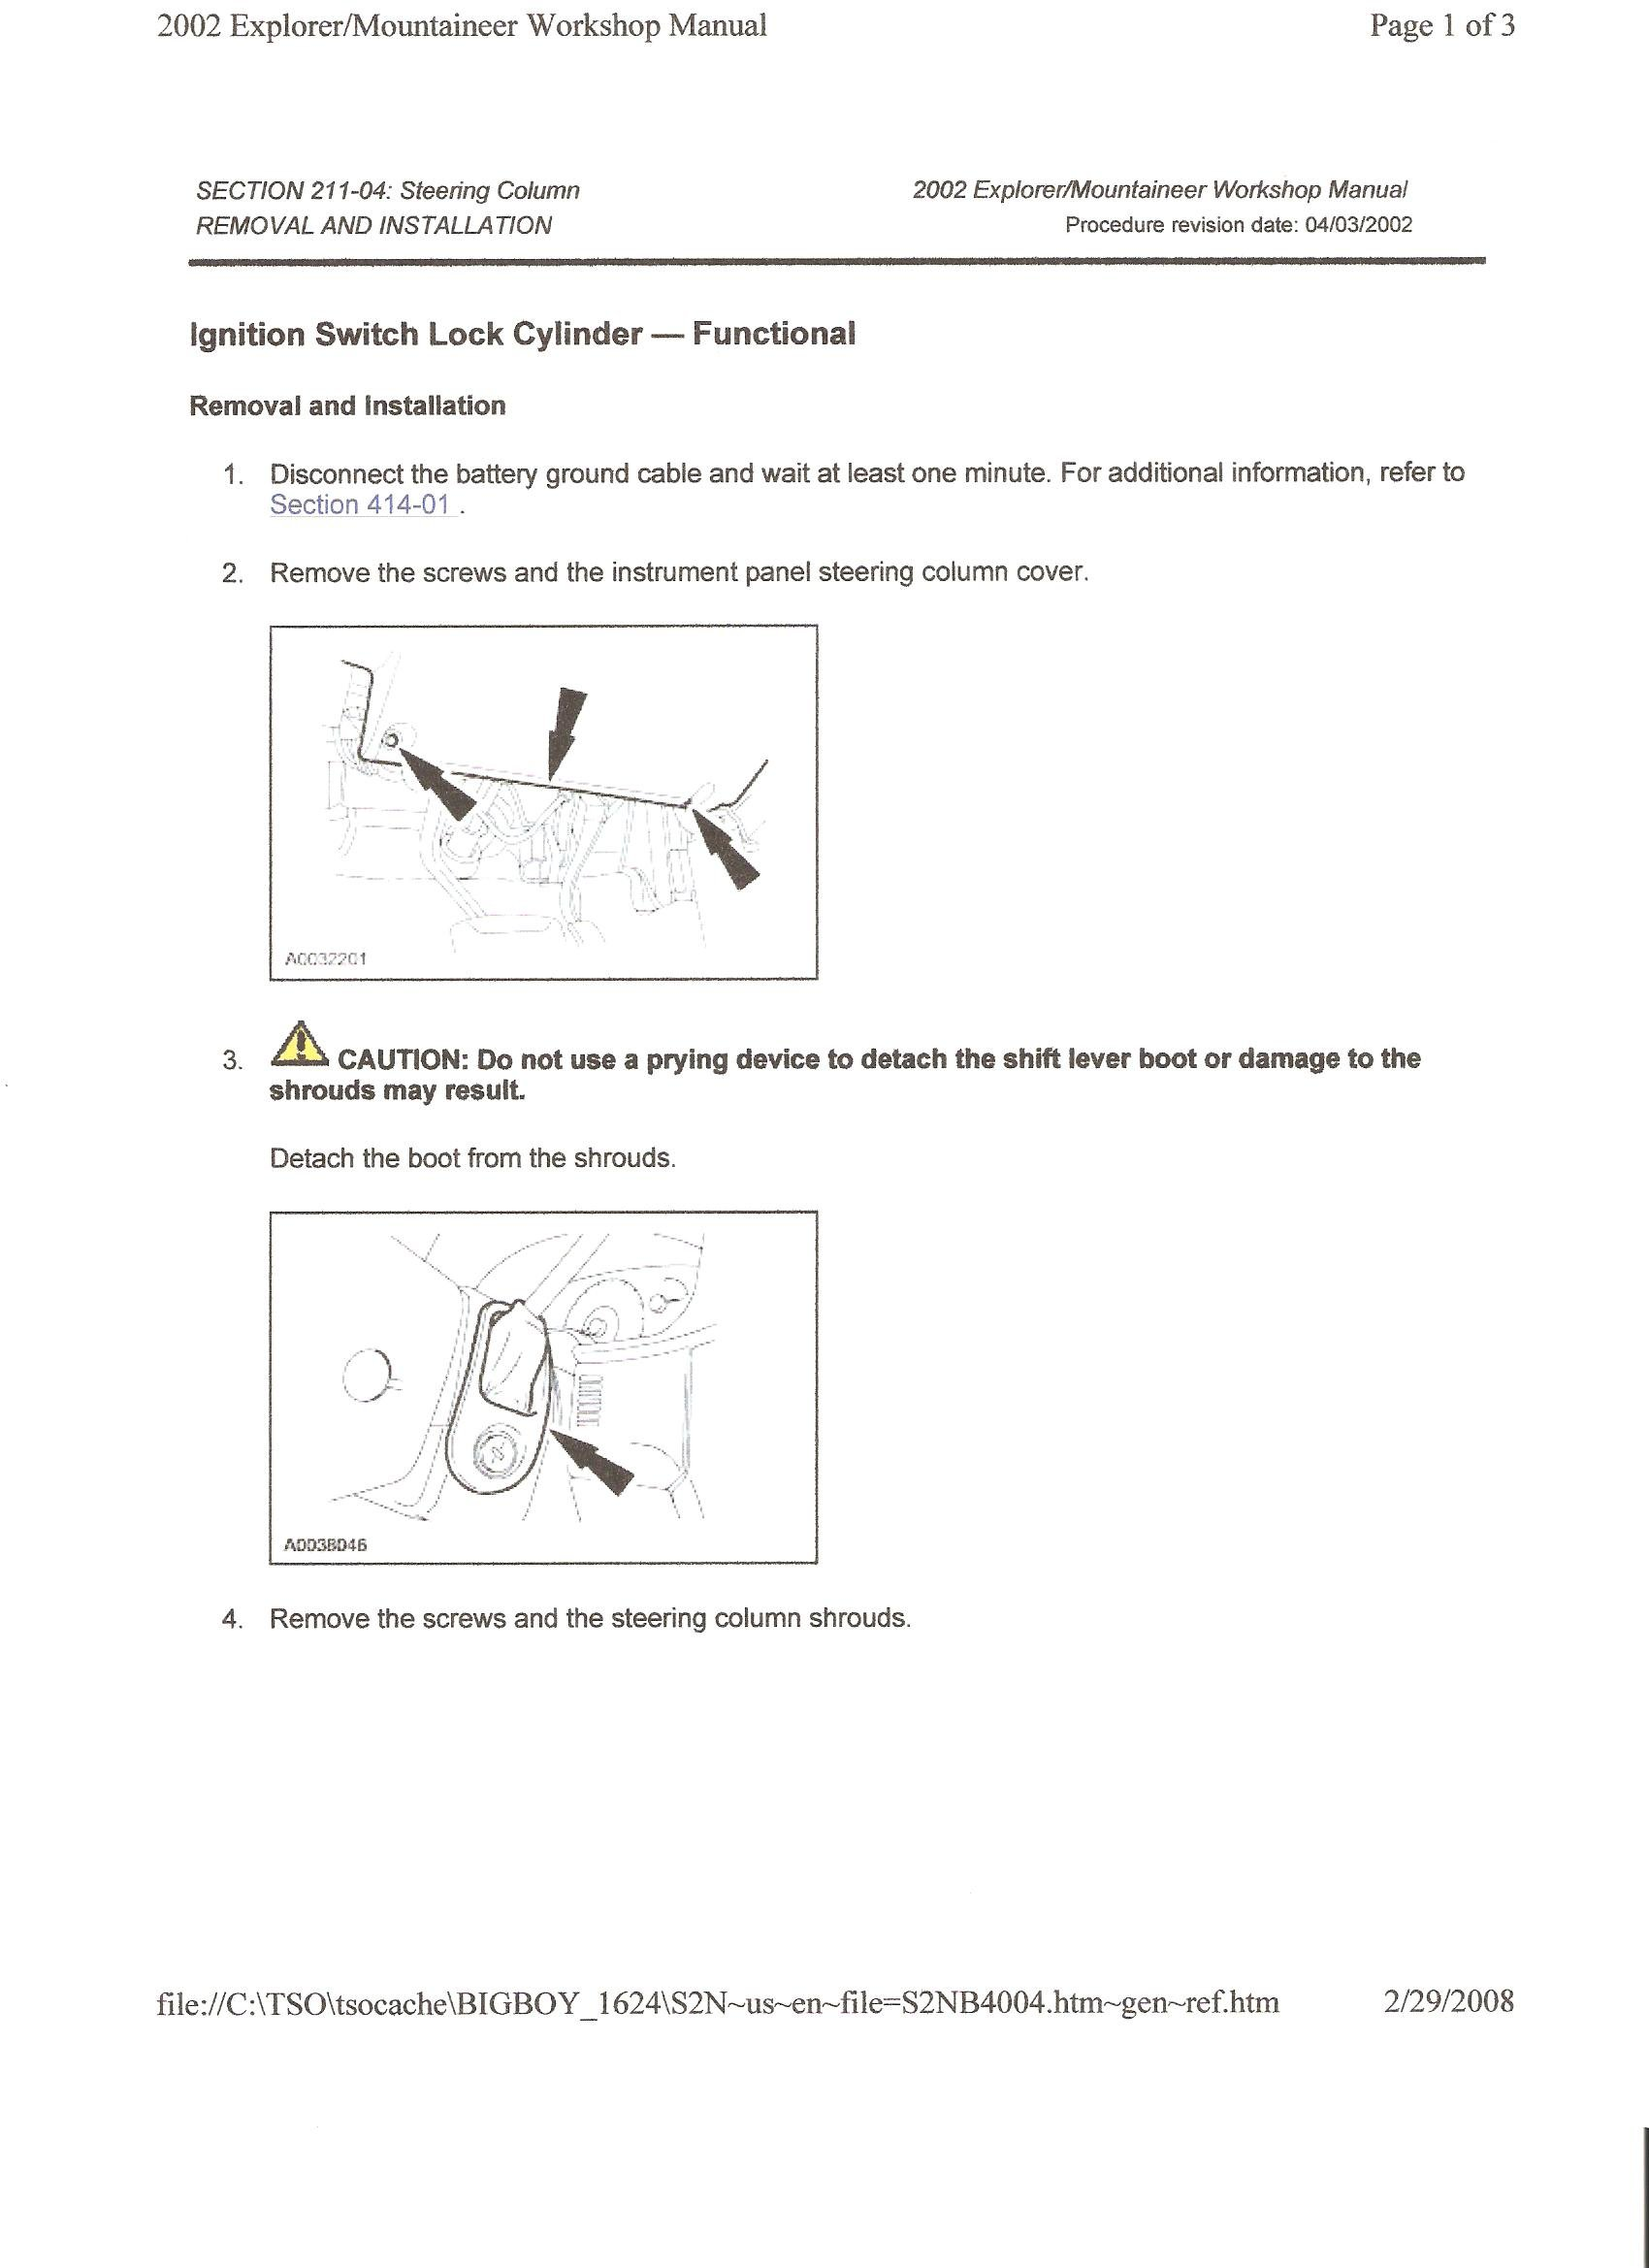 How To Remove Ignition Lock Cylinder On 2002 Ford Explorer Key Is 2003 Sport Trac Fuel Filter Removal Follow The Directions Given Below Note That Has Be In Accy Position For And Not Run As Previous